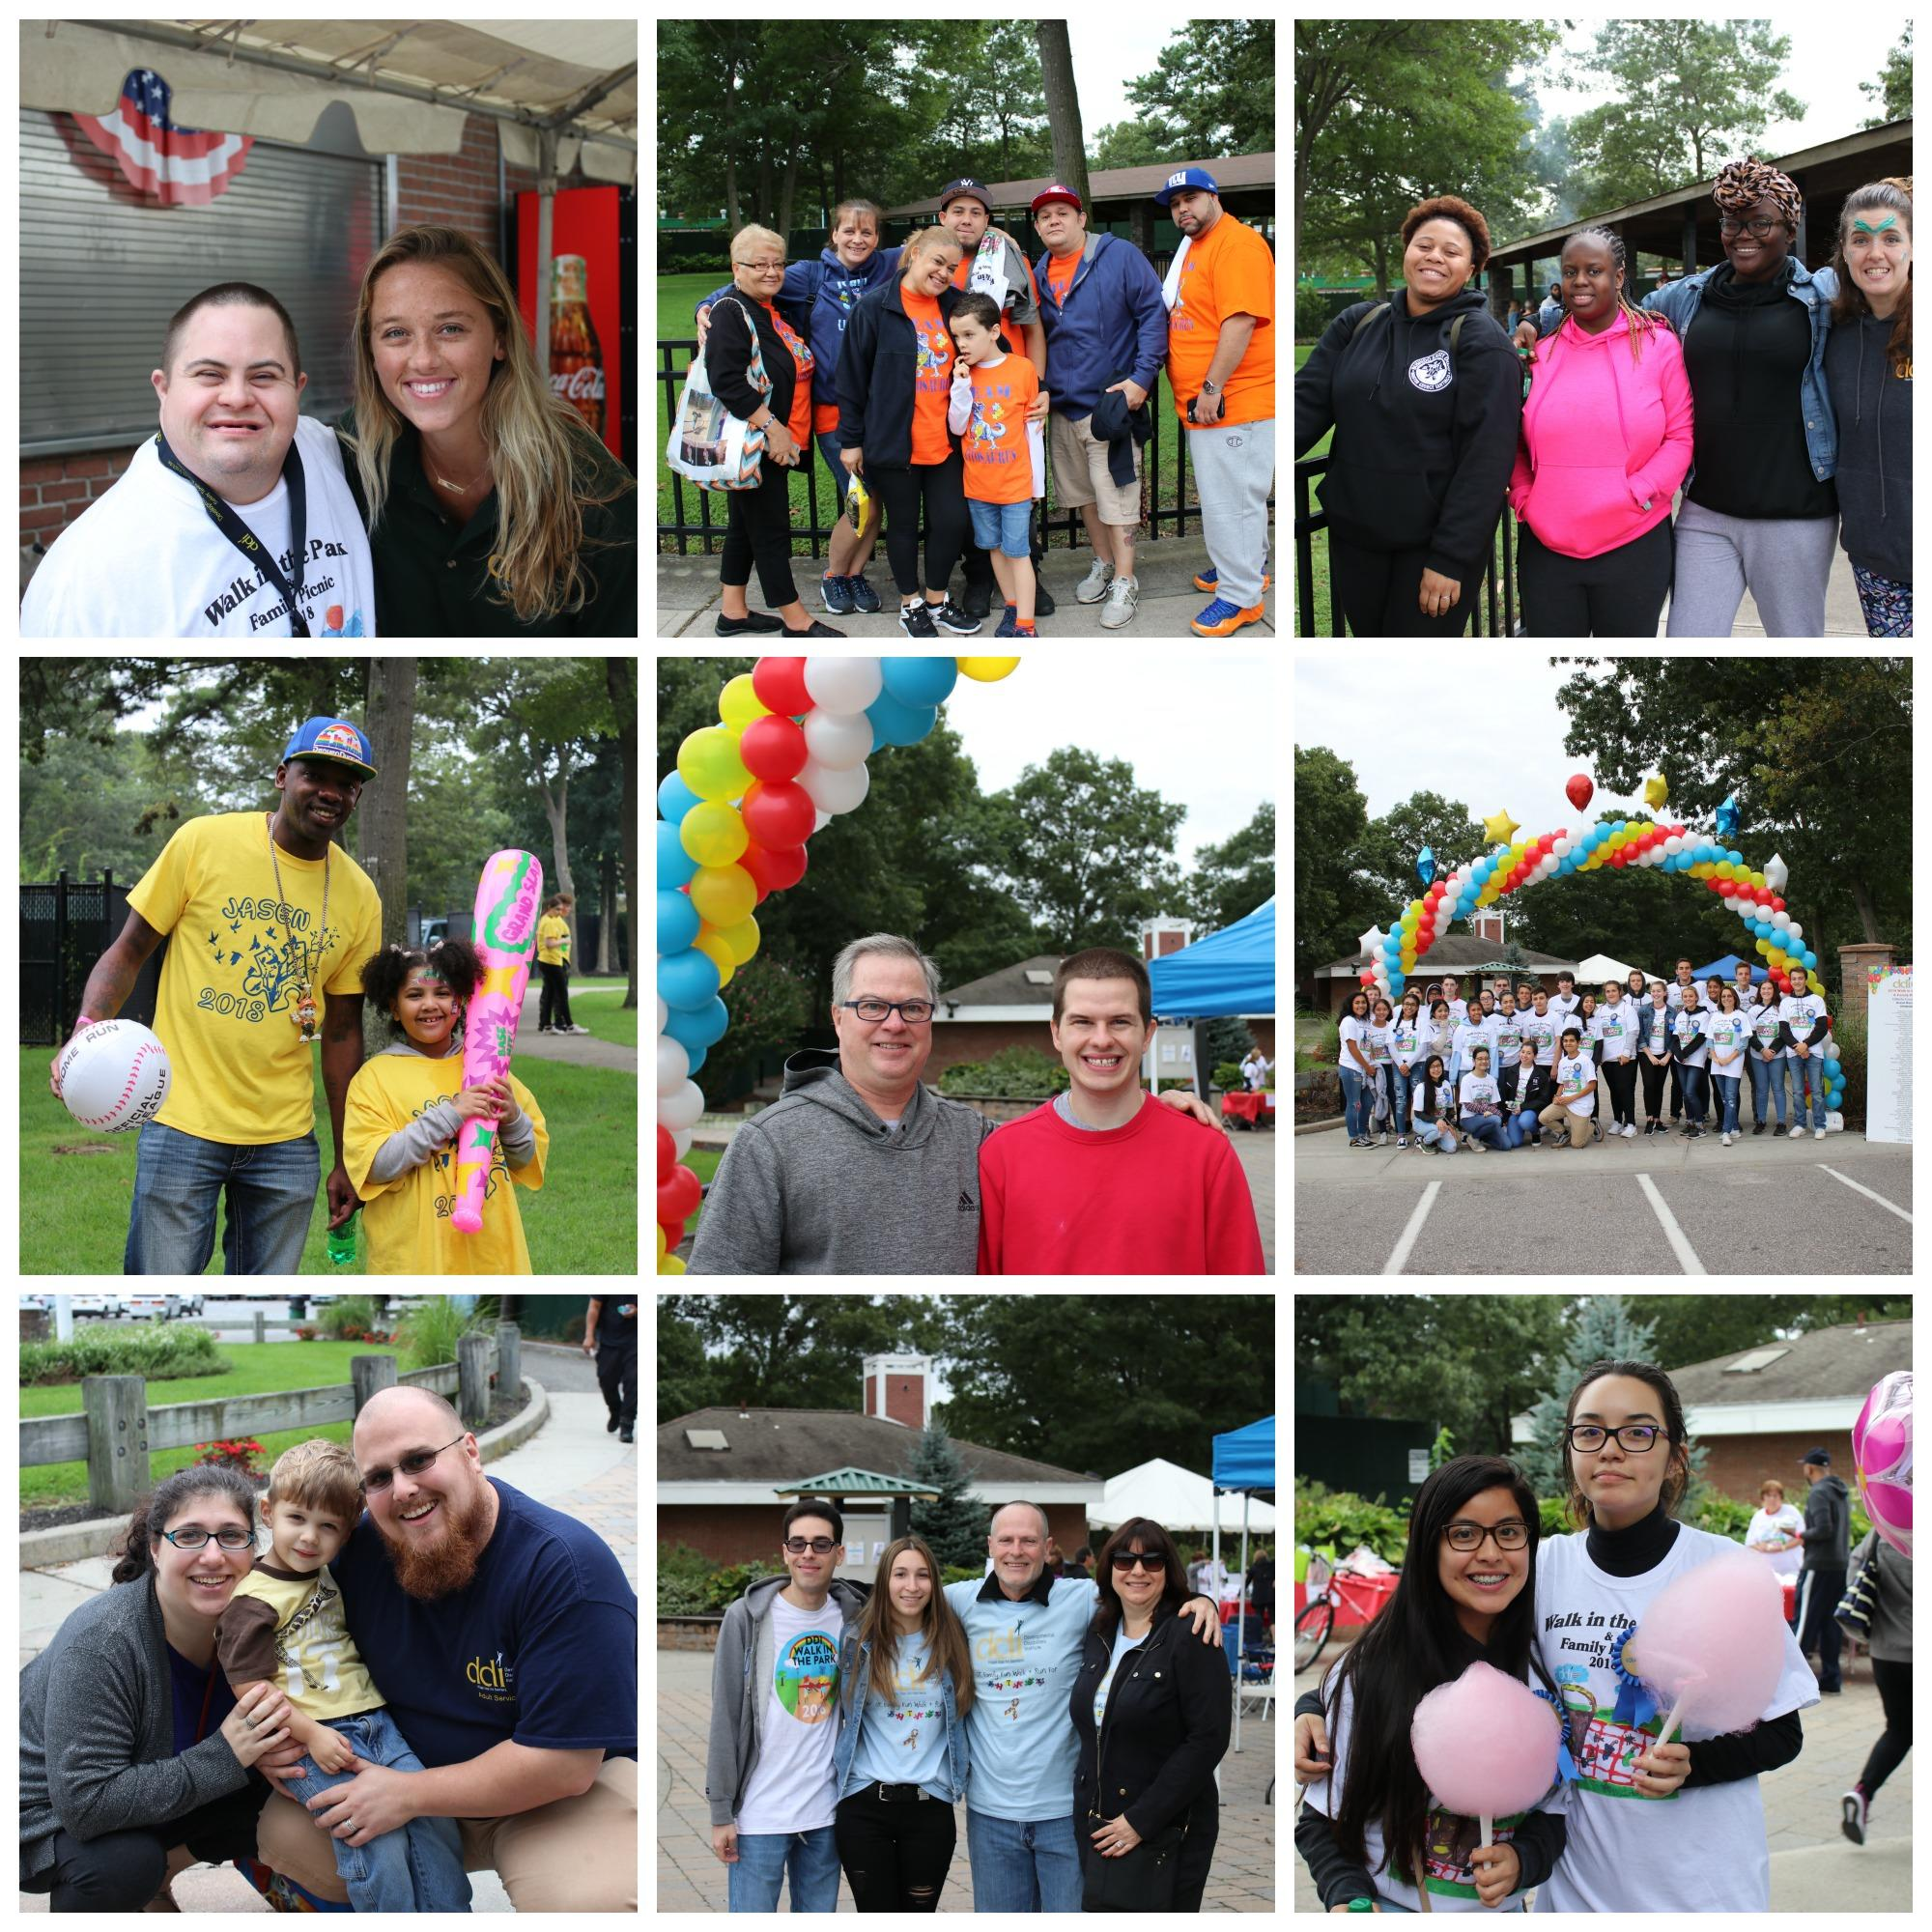 DDI Walk collage of guests